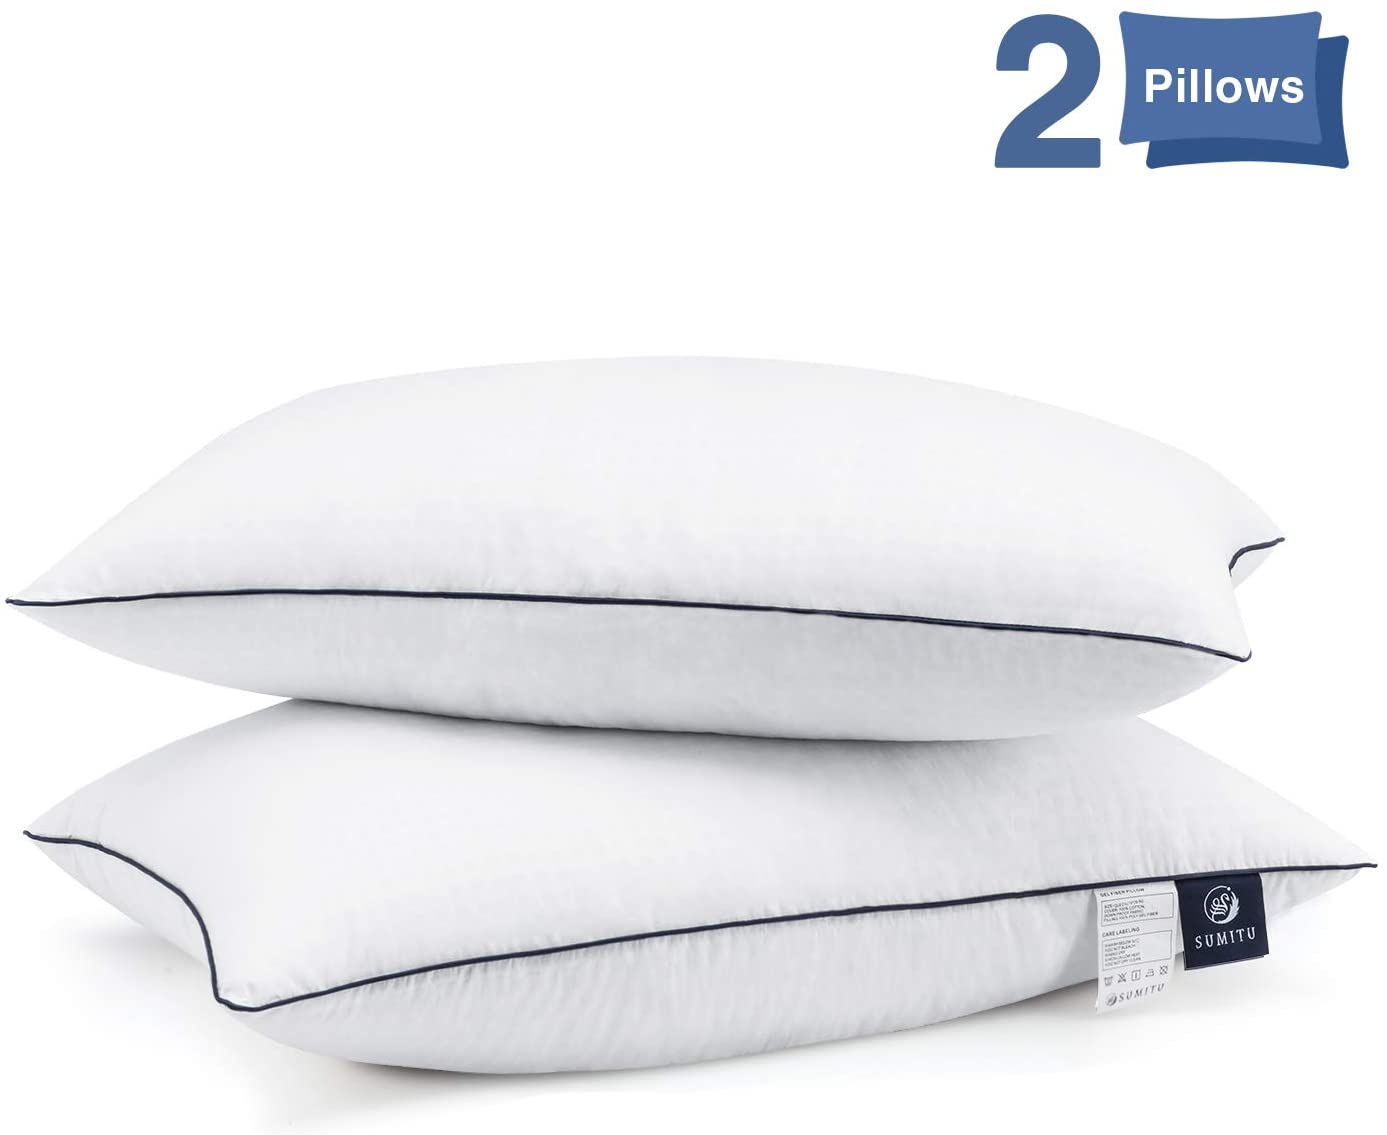 SUMITU Hypoallergenic Gel Hotel Pillows, 2-Pack